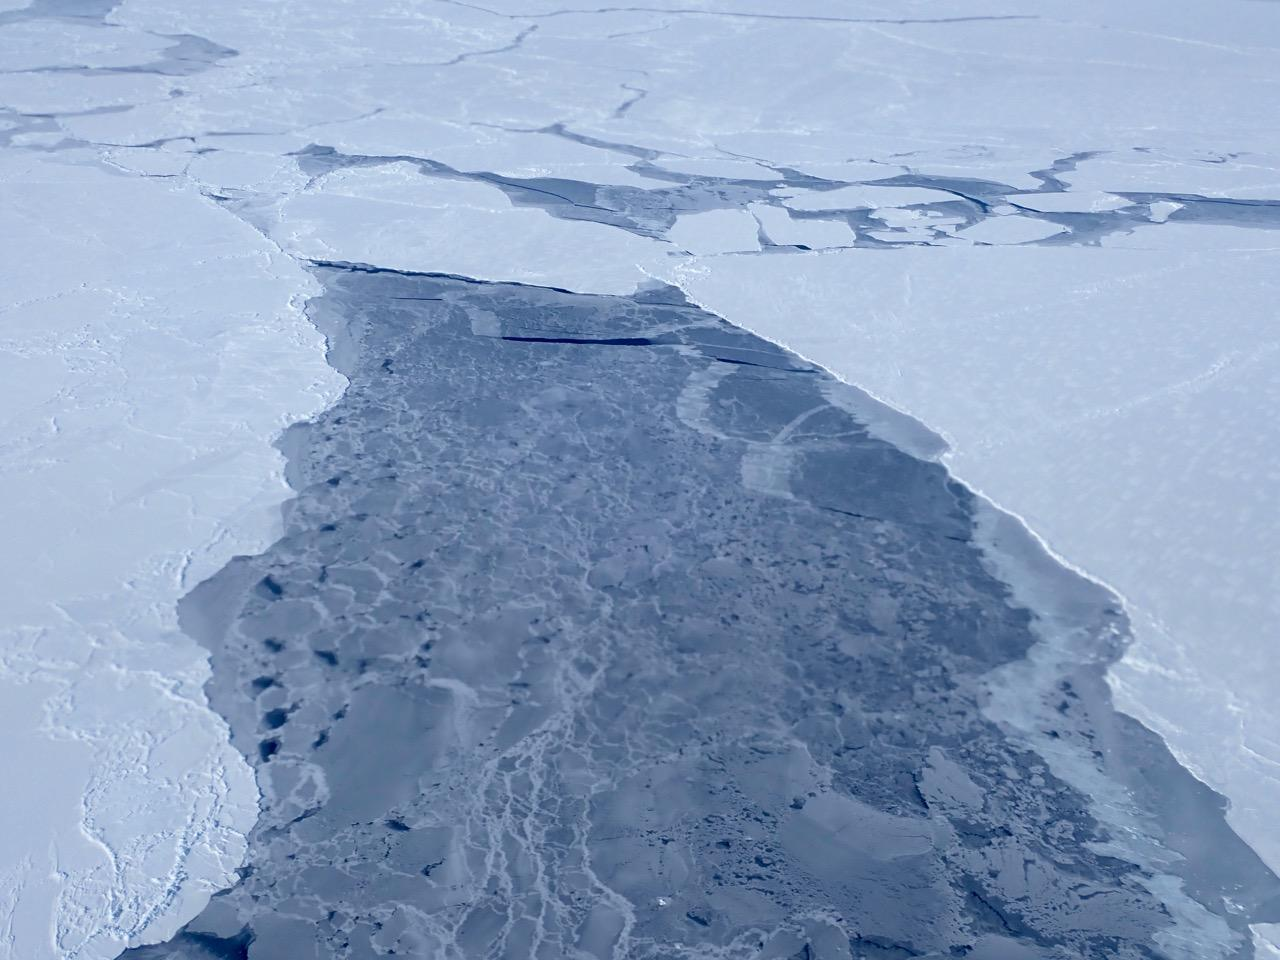 A big lead, or opening in the sea ice pack, in the eastern Beaufort Sea